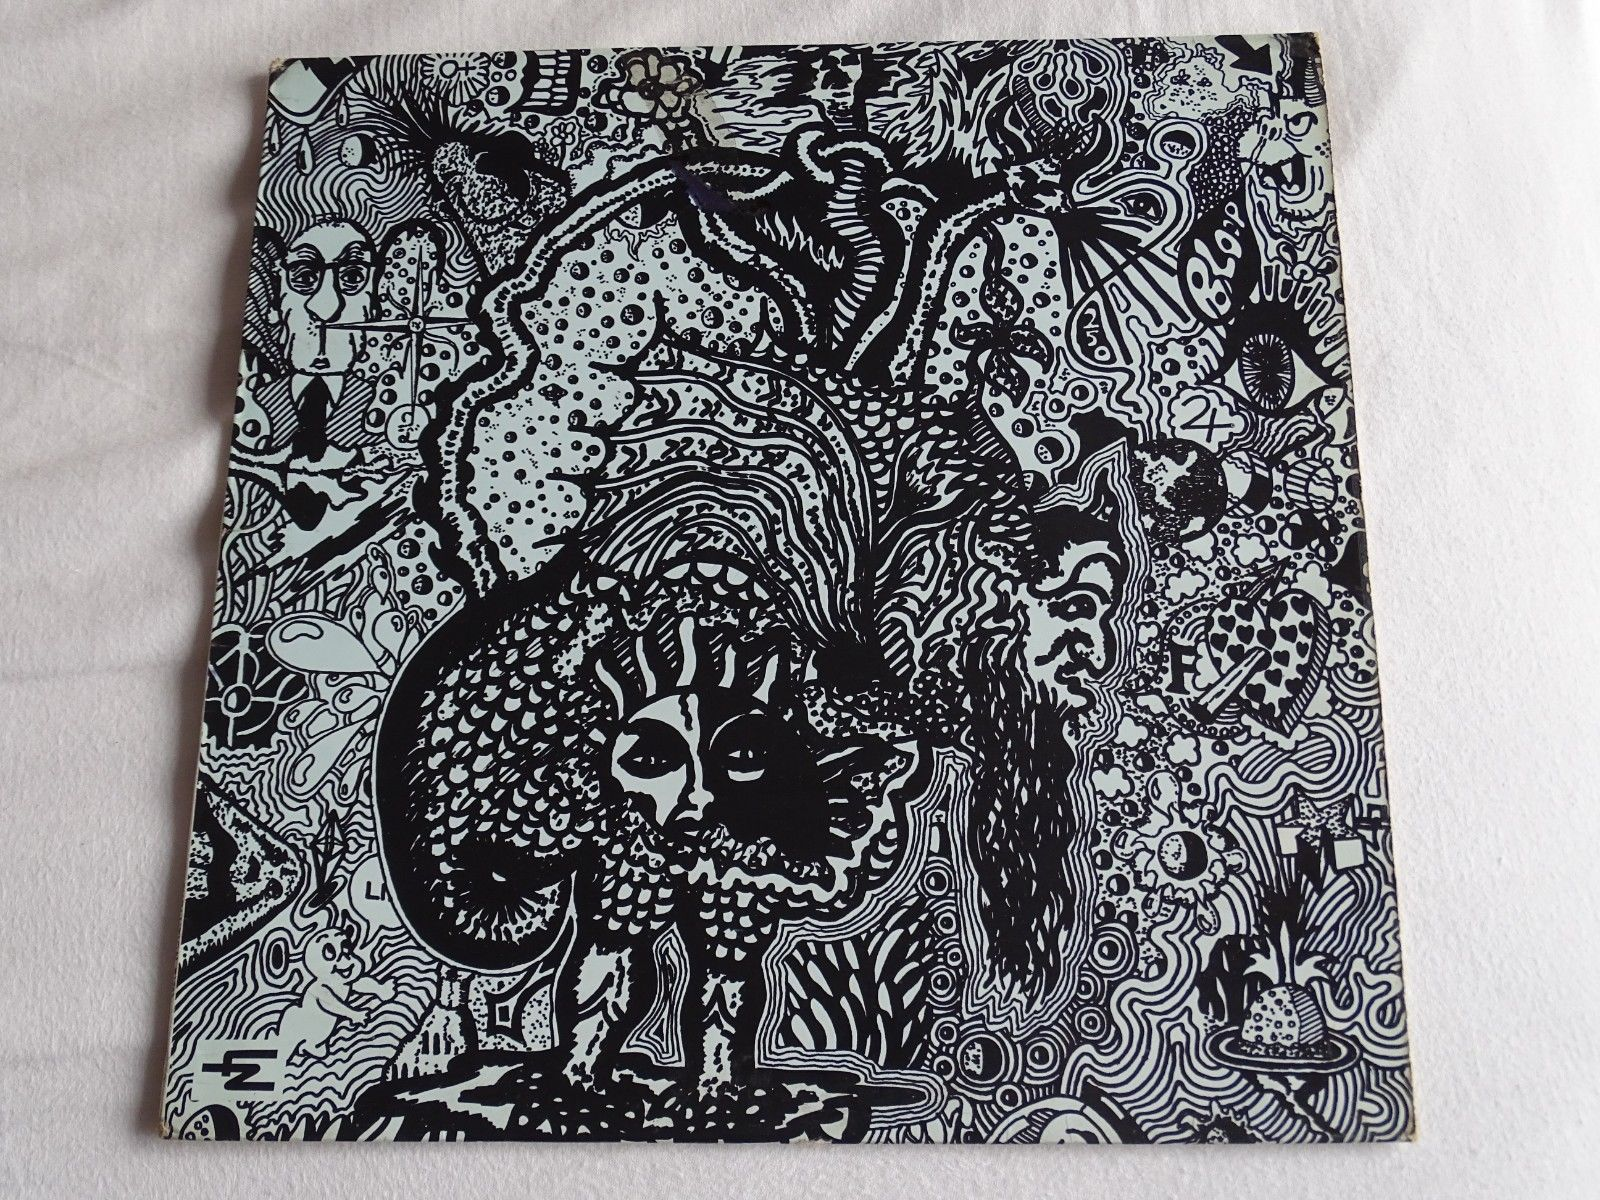 ARZACHEL,, ARZACHEL.. UK Original 1969 EVOLUTION label LP. EXCELLENT. PSYCH.